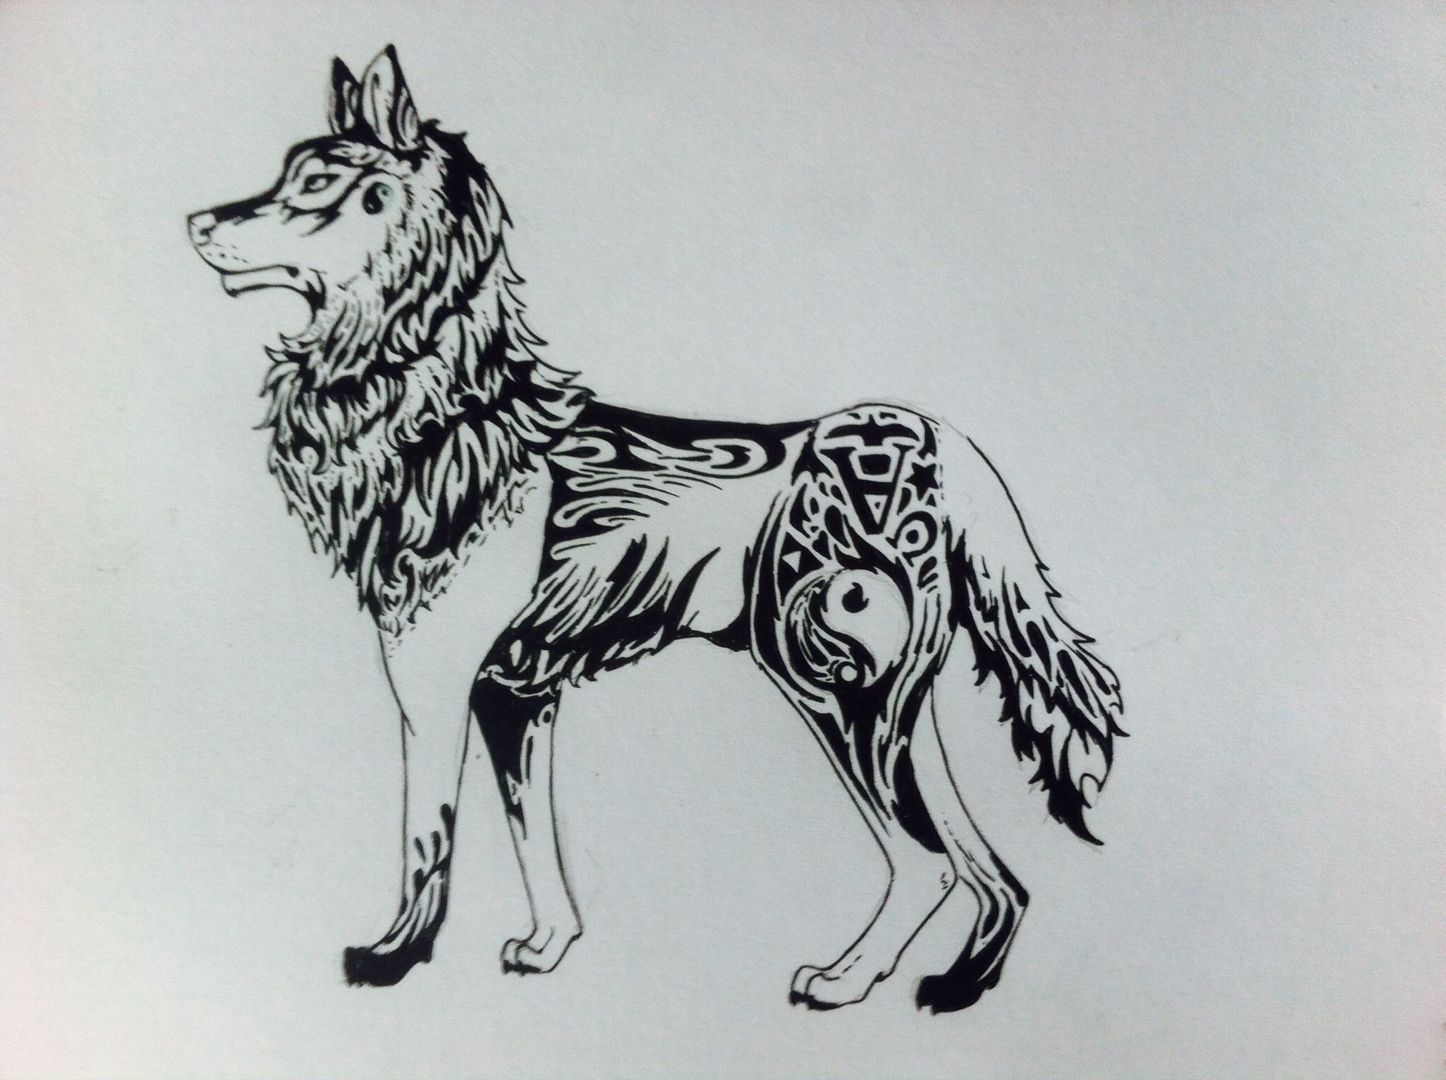 Dessins 2015 2016 dessin 20 loup tribal wattpad - Dessin de loup simple ...